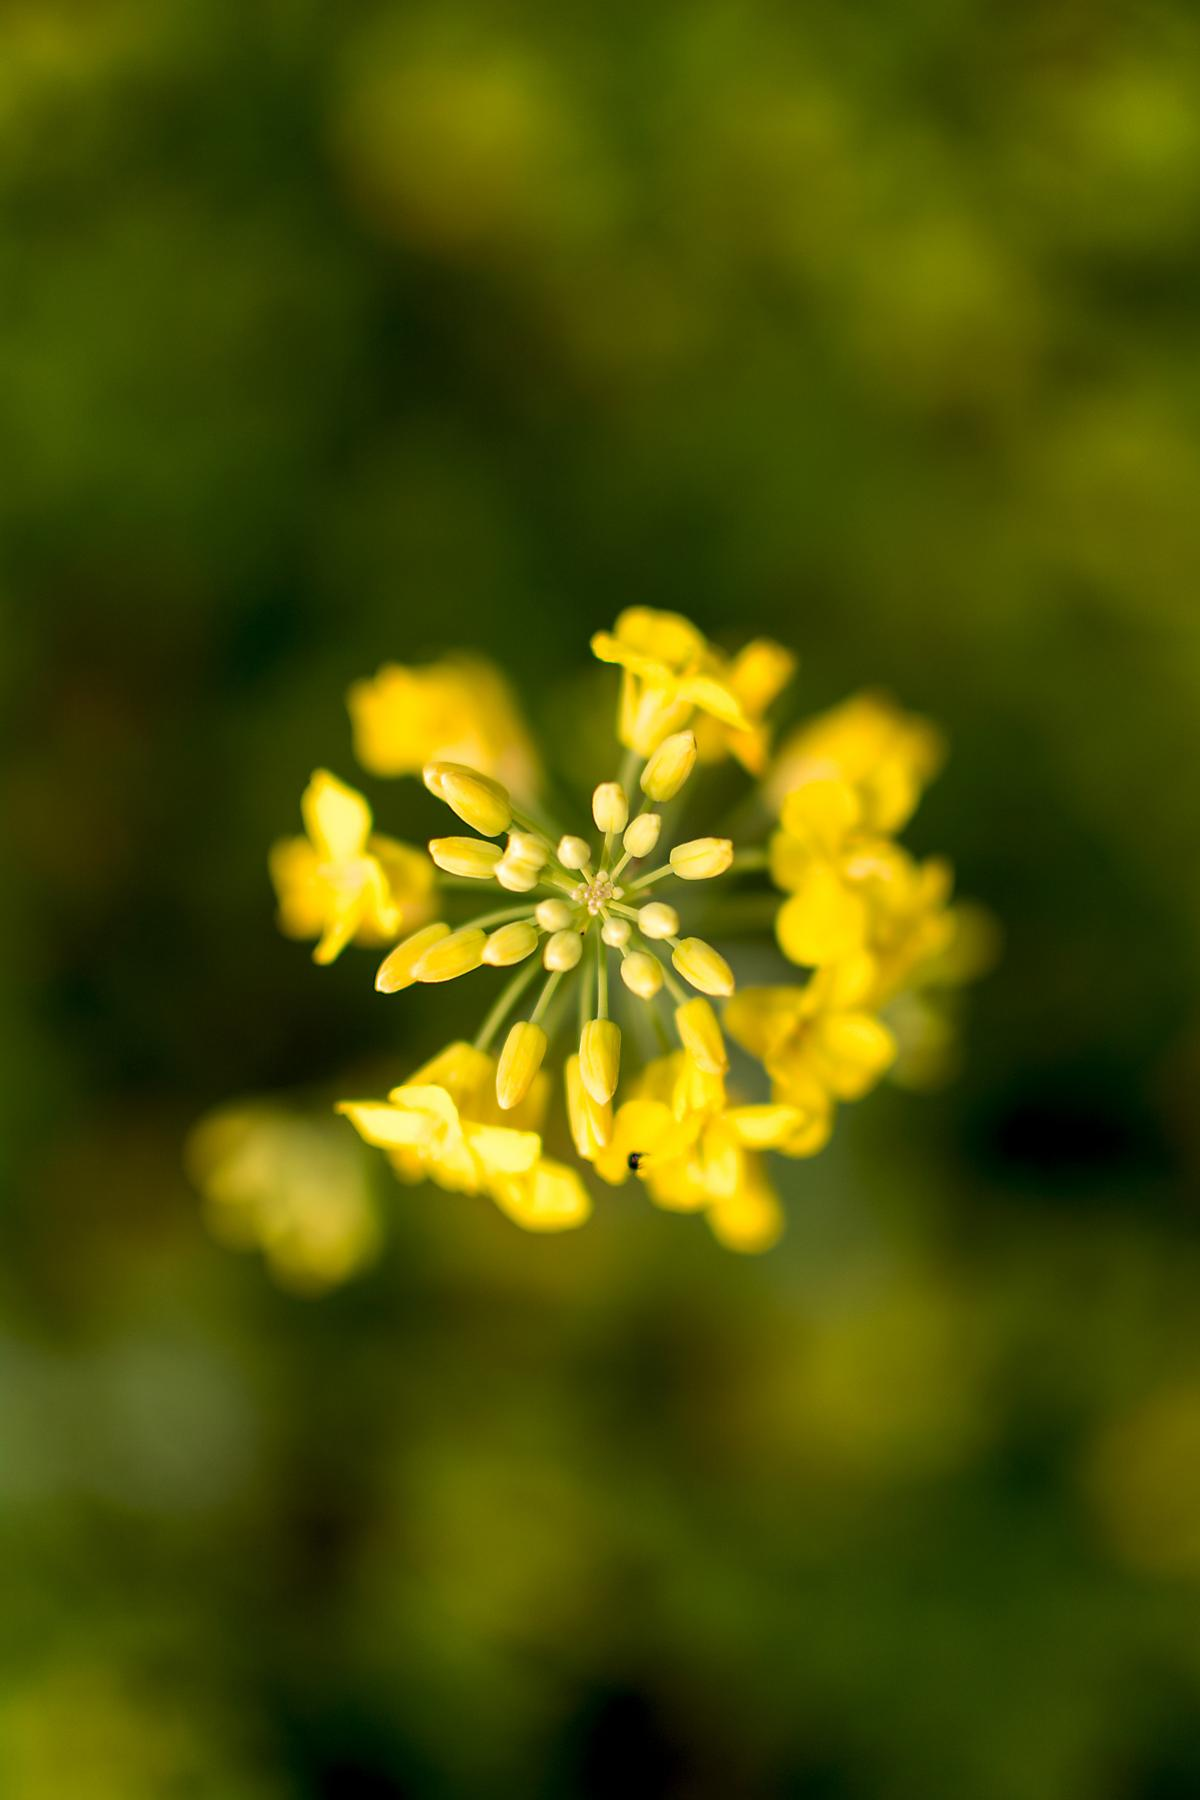 Canola Rape Flower Close-Up - Free Image For Commercial Use #425492